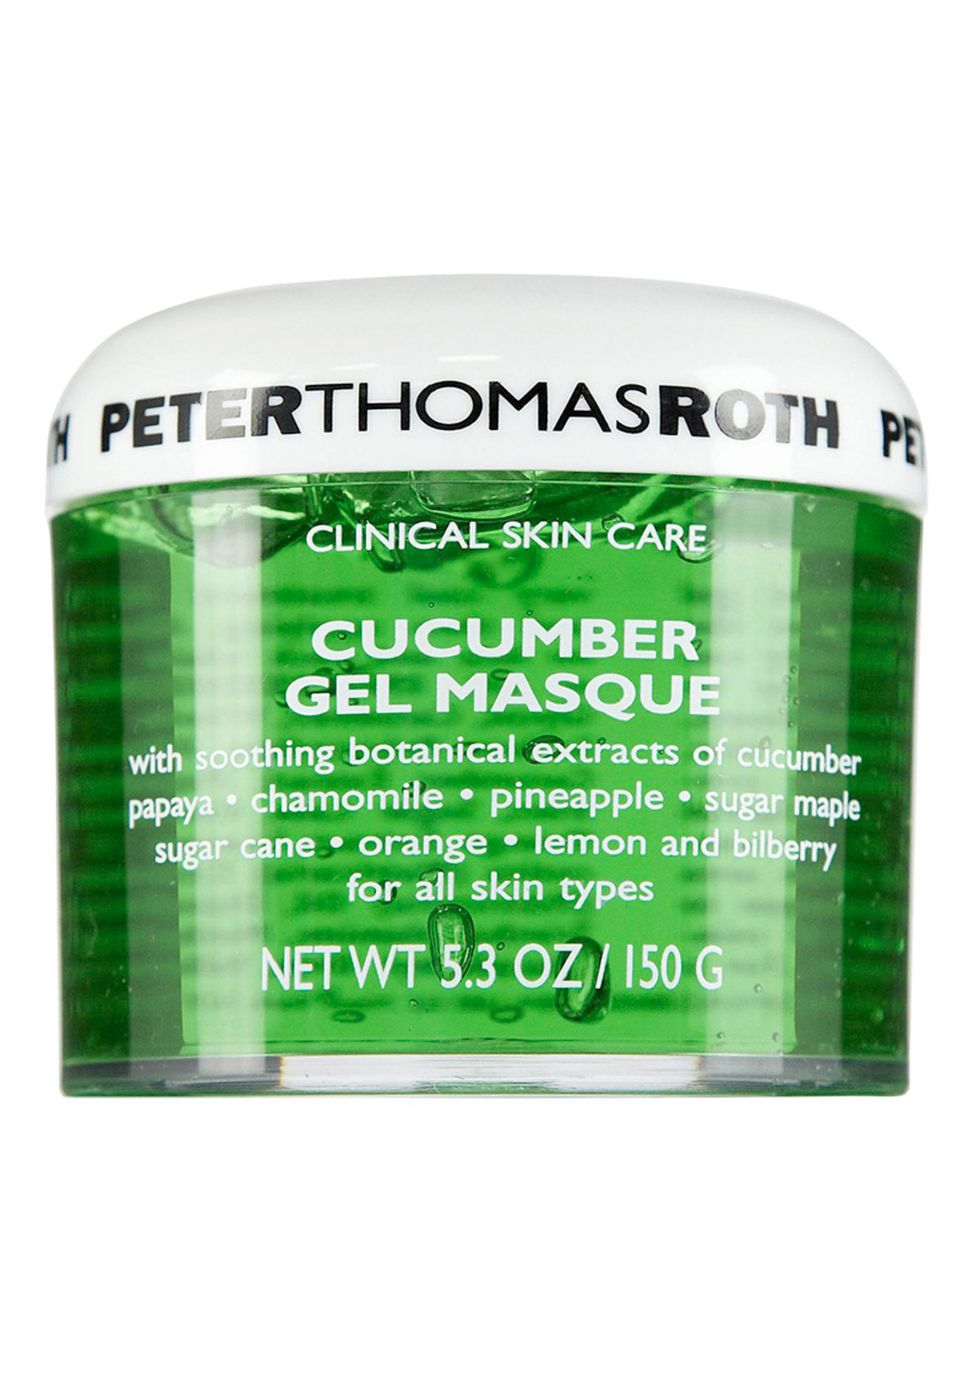 best-face-mask-peter-thomas-roth-review-1516983884.jpg